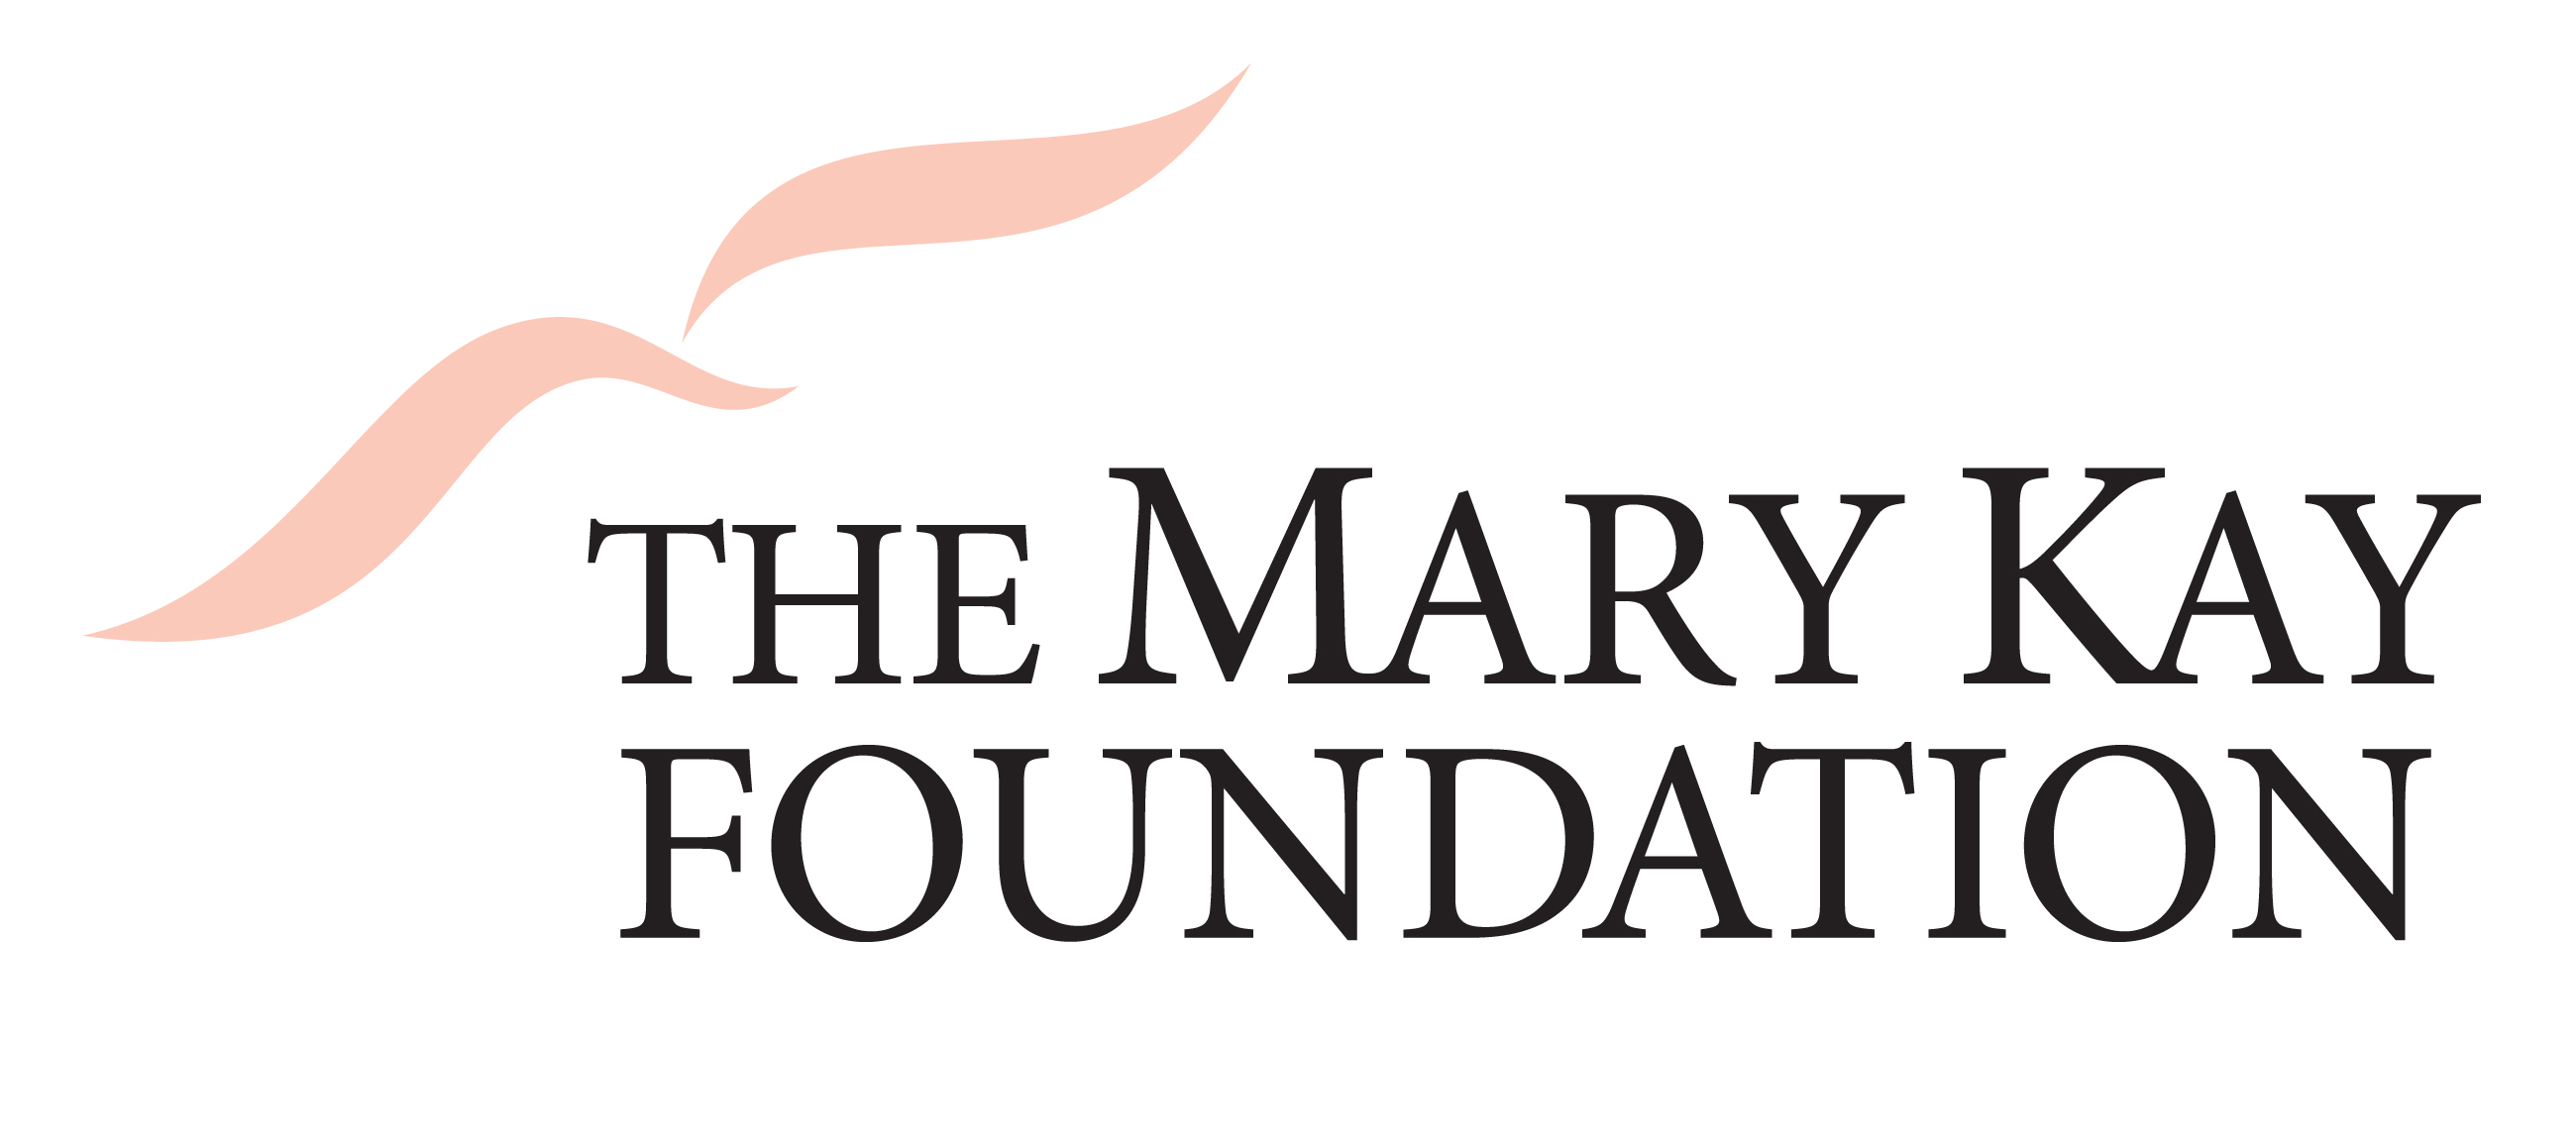 the mary kay foundation announces 3 million in grants to domestic rh newsroom marykay com mary kay logo font mary kay logo 2017